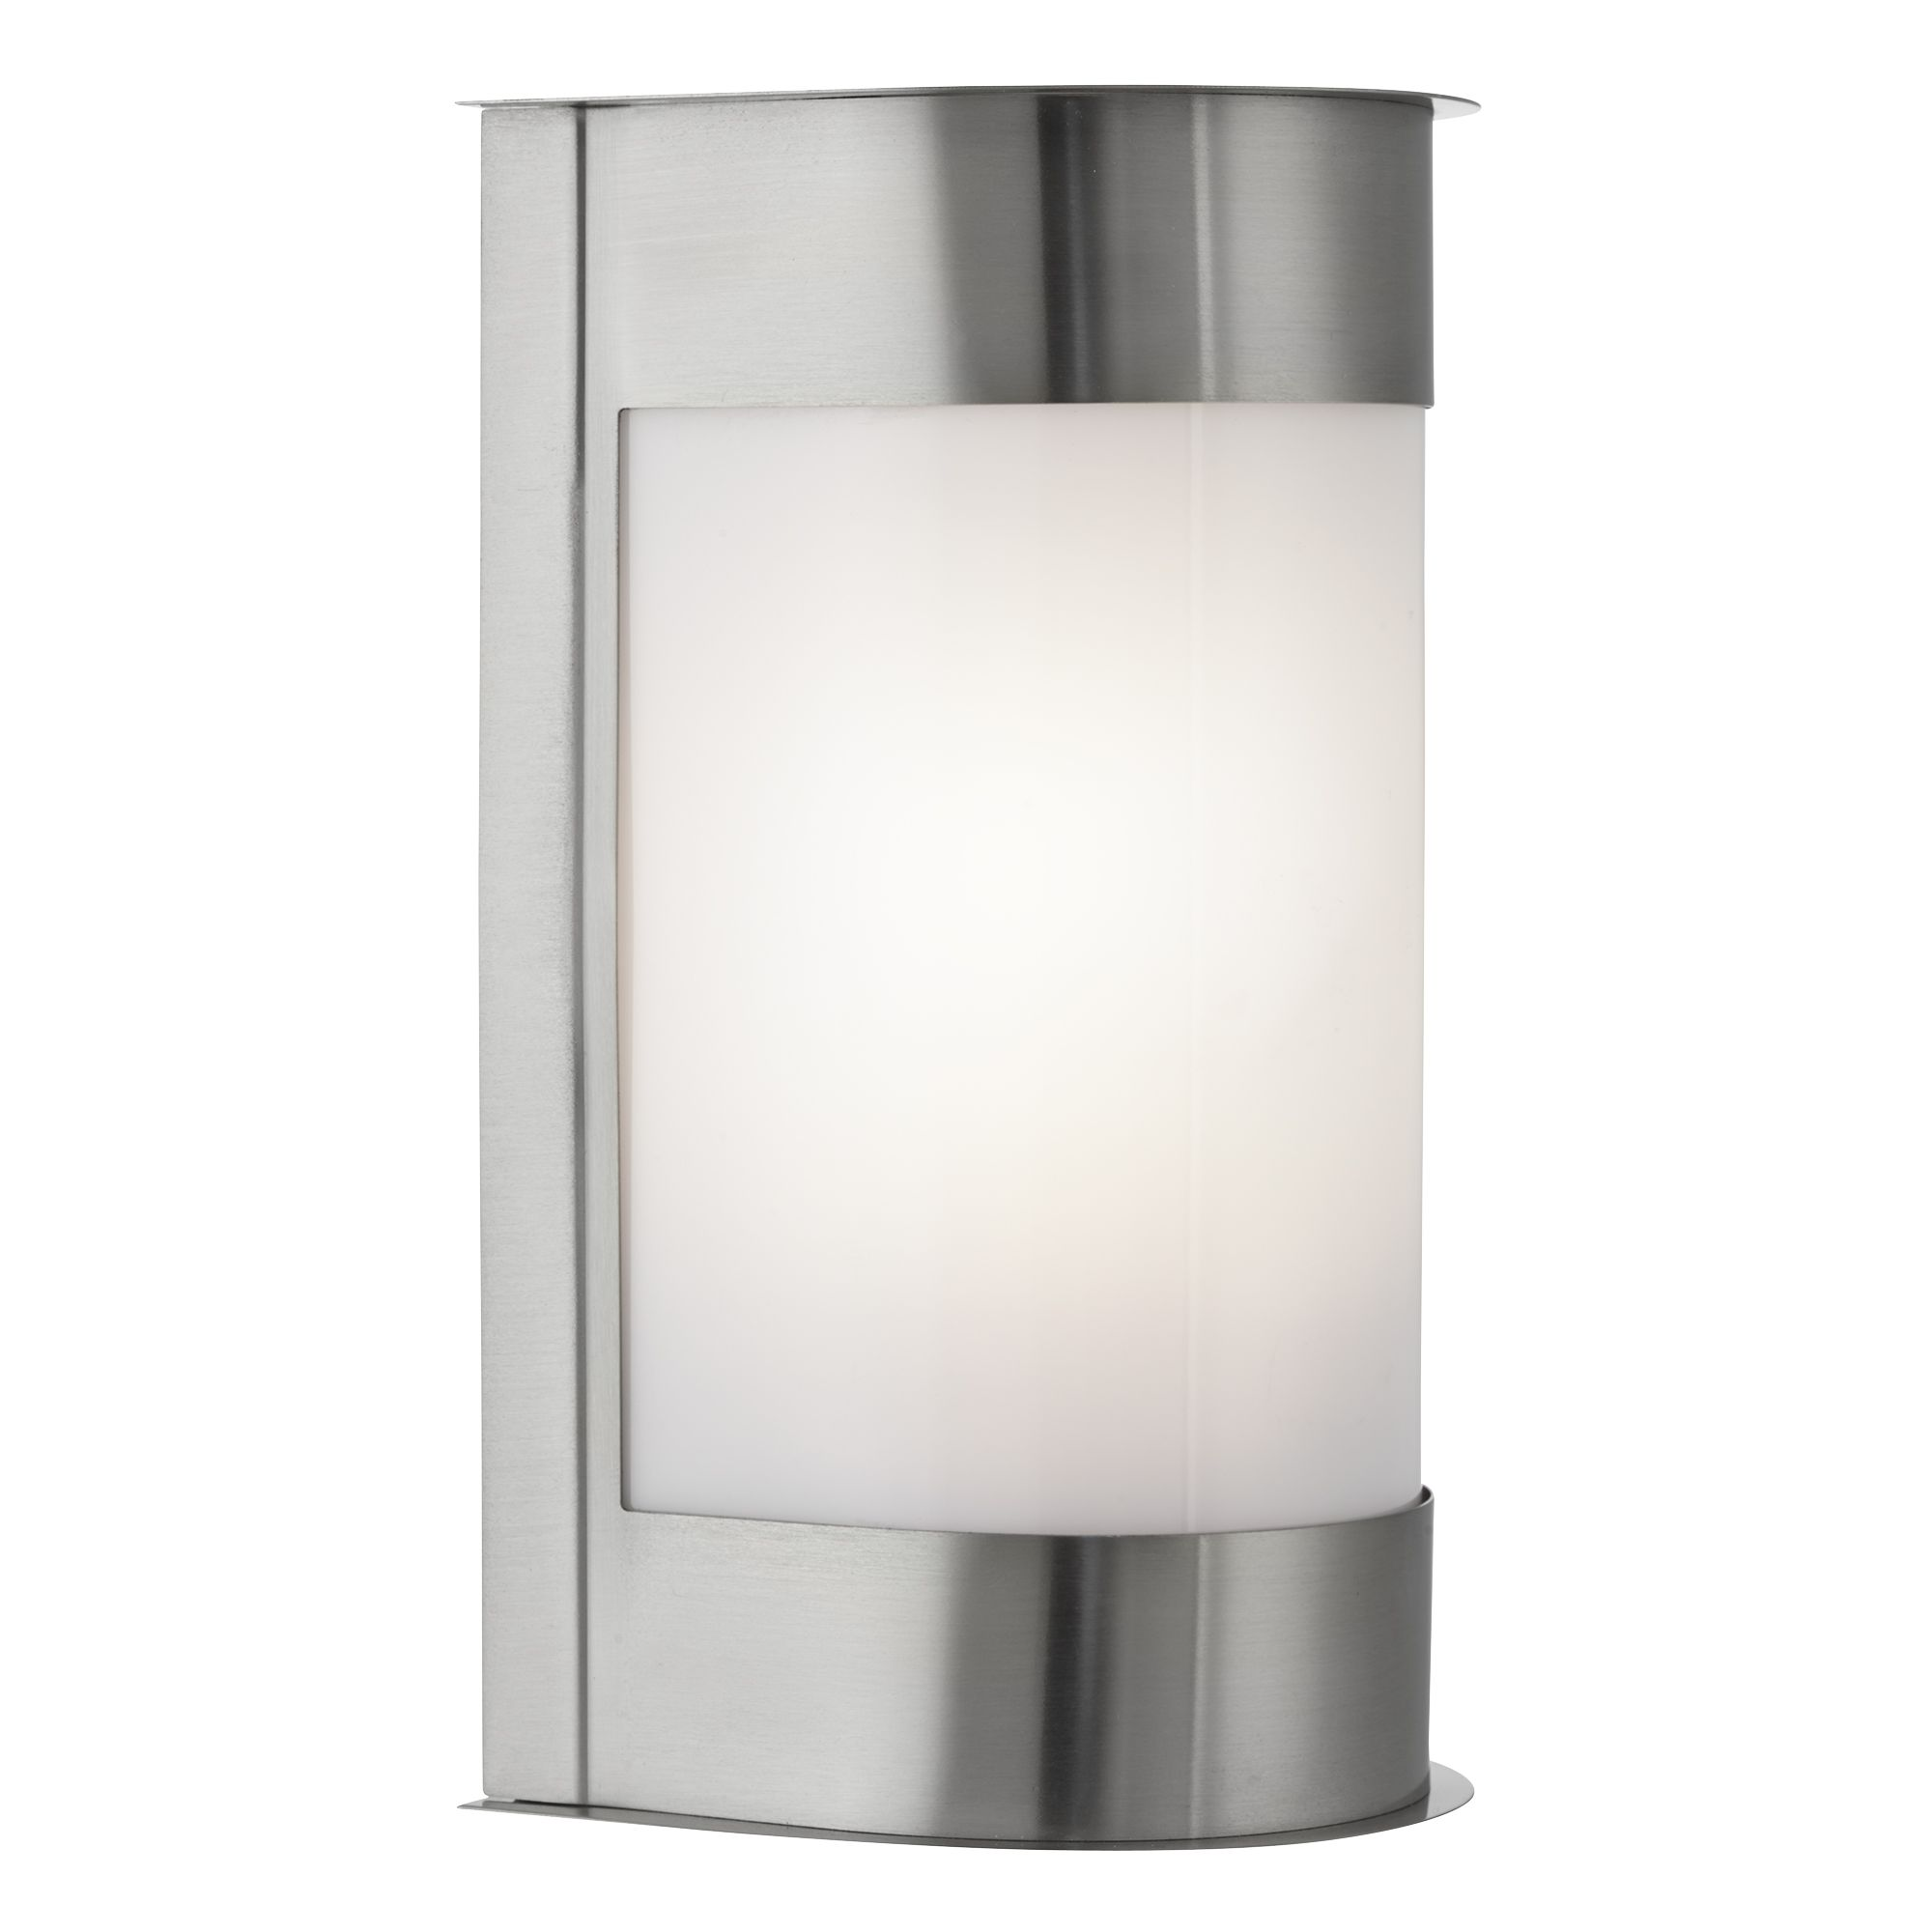 Stainless Steel Ip44 Curved  Light With Polycarbonate Diffuser W/b